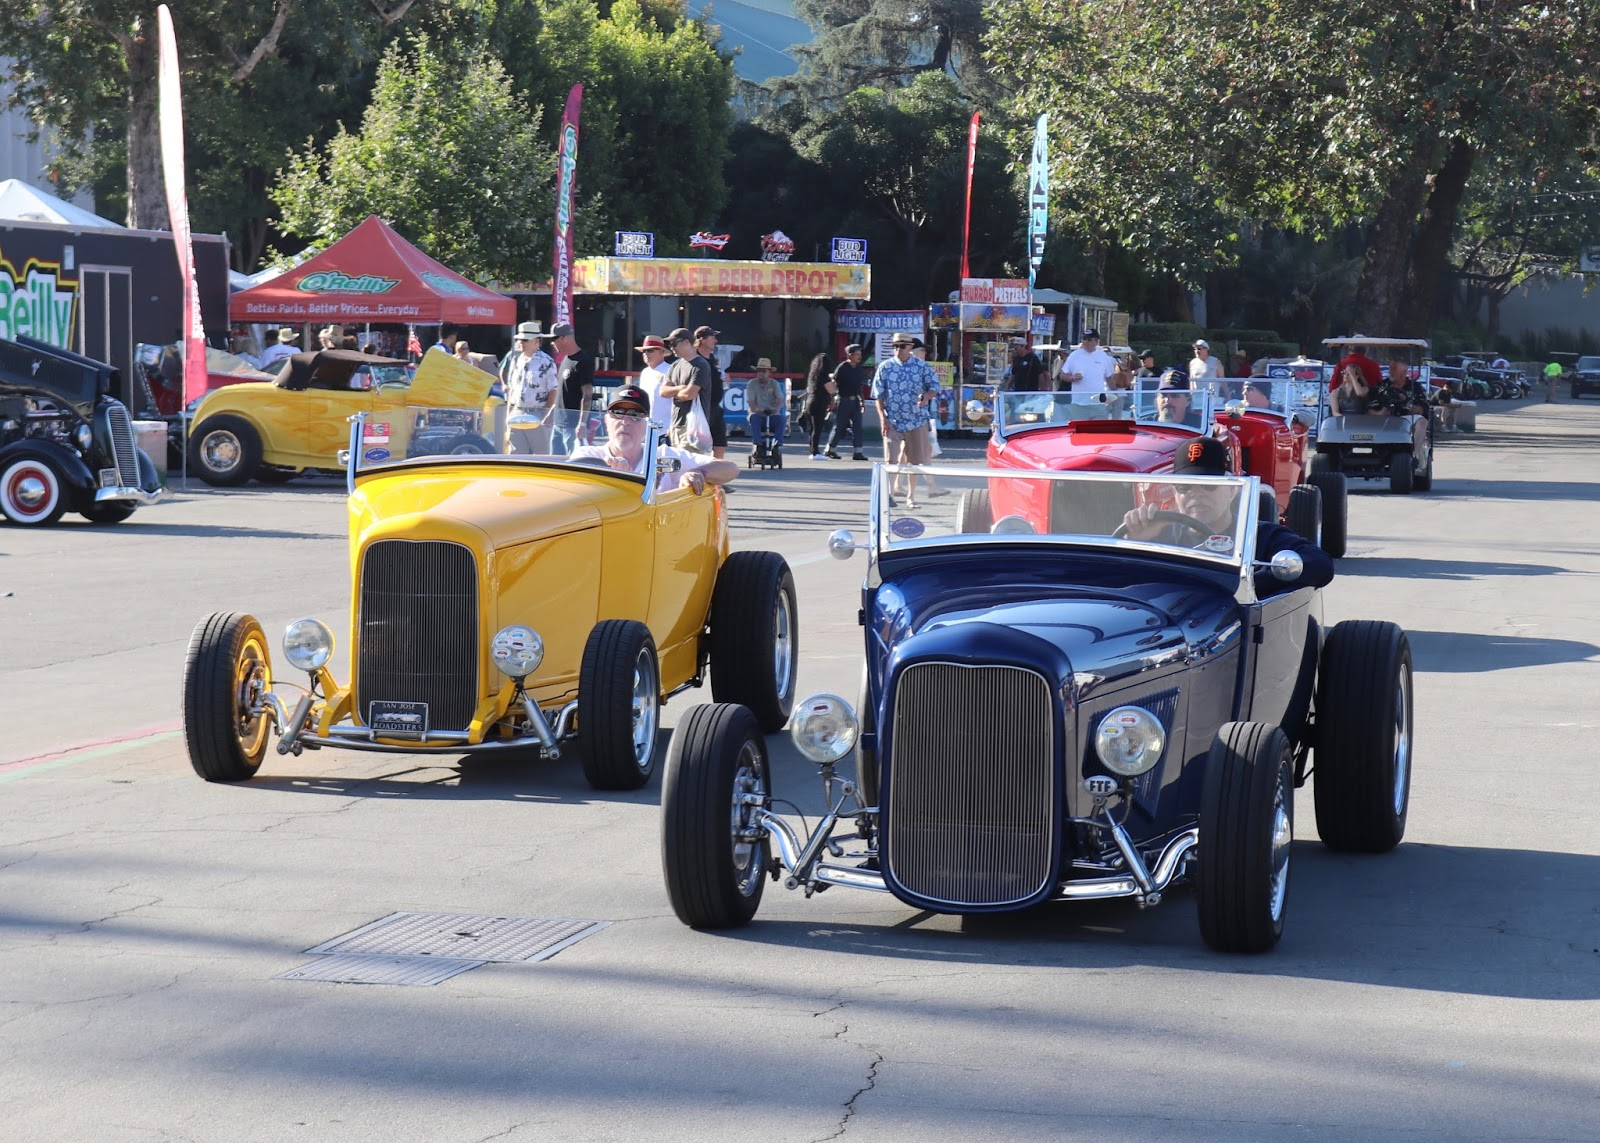 Covering Classic Cars : 2017 LA Roadster Car Show and Swap Meet at ...